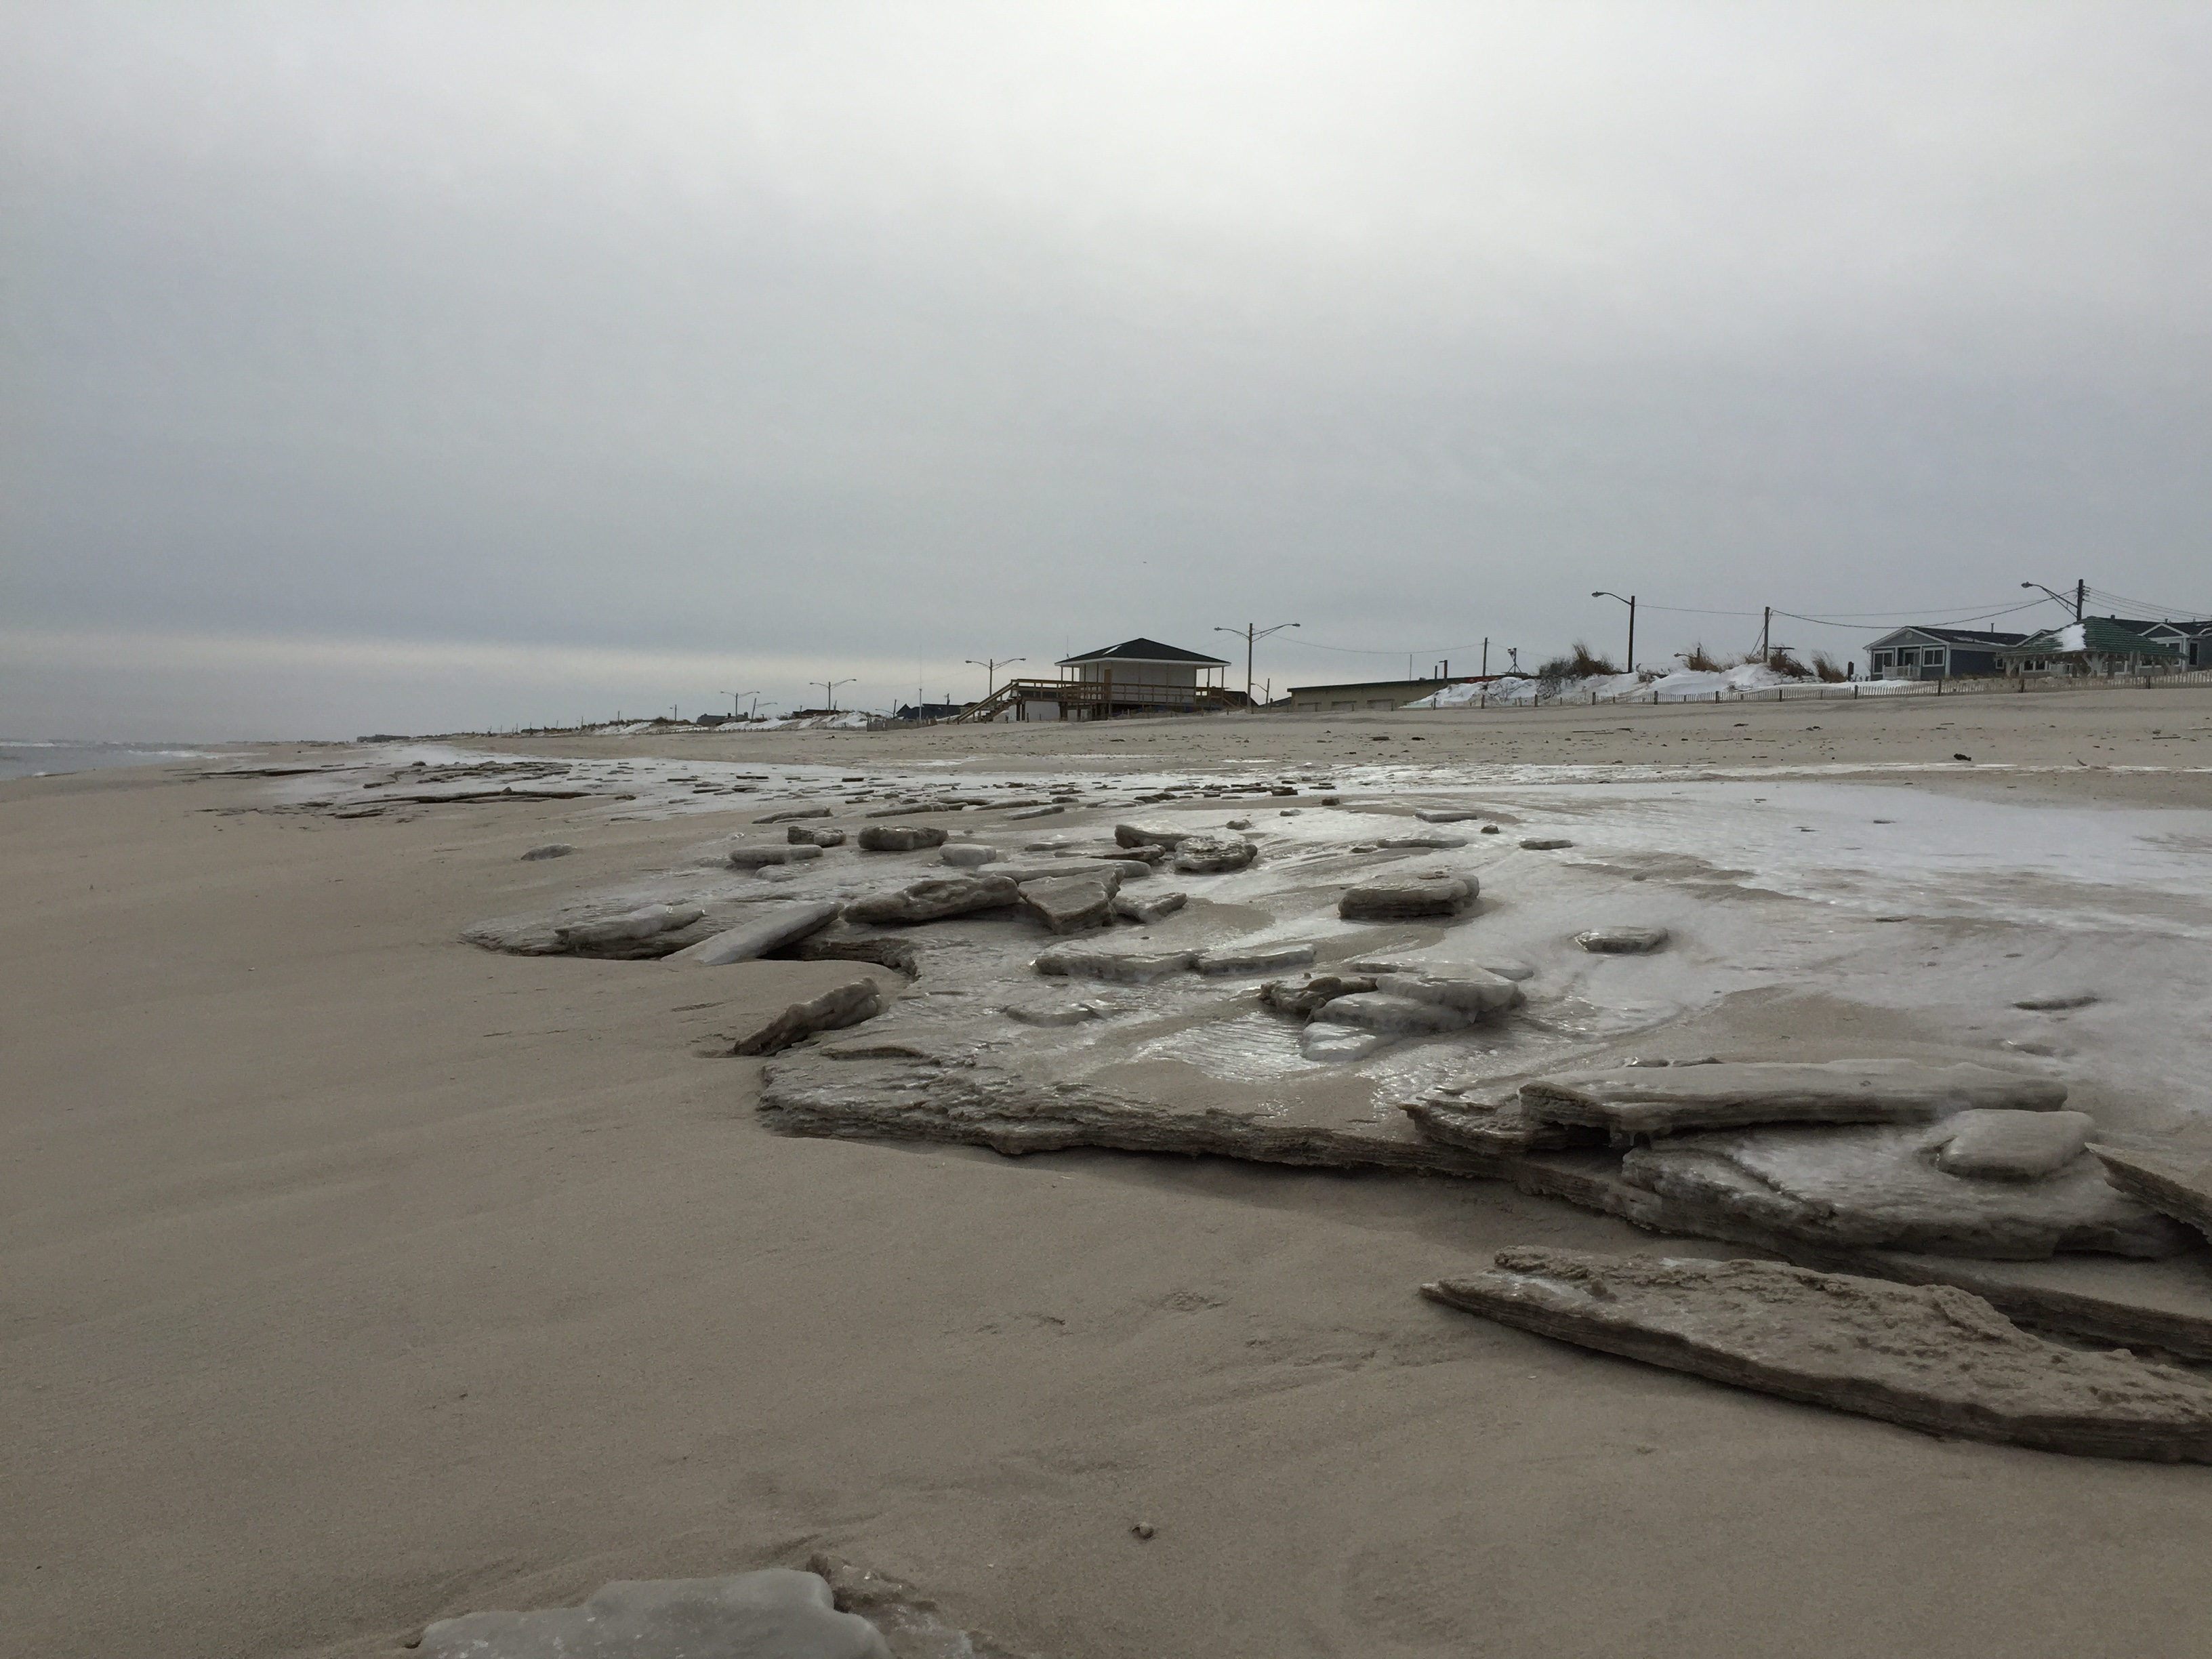 Chunks of ice washed up on the beach in Seaside Park, Feb. 2015. (Photo: Daniel Nee)